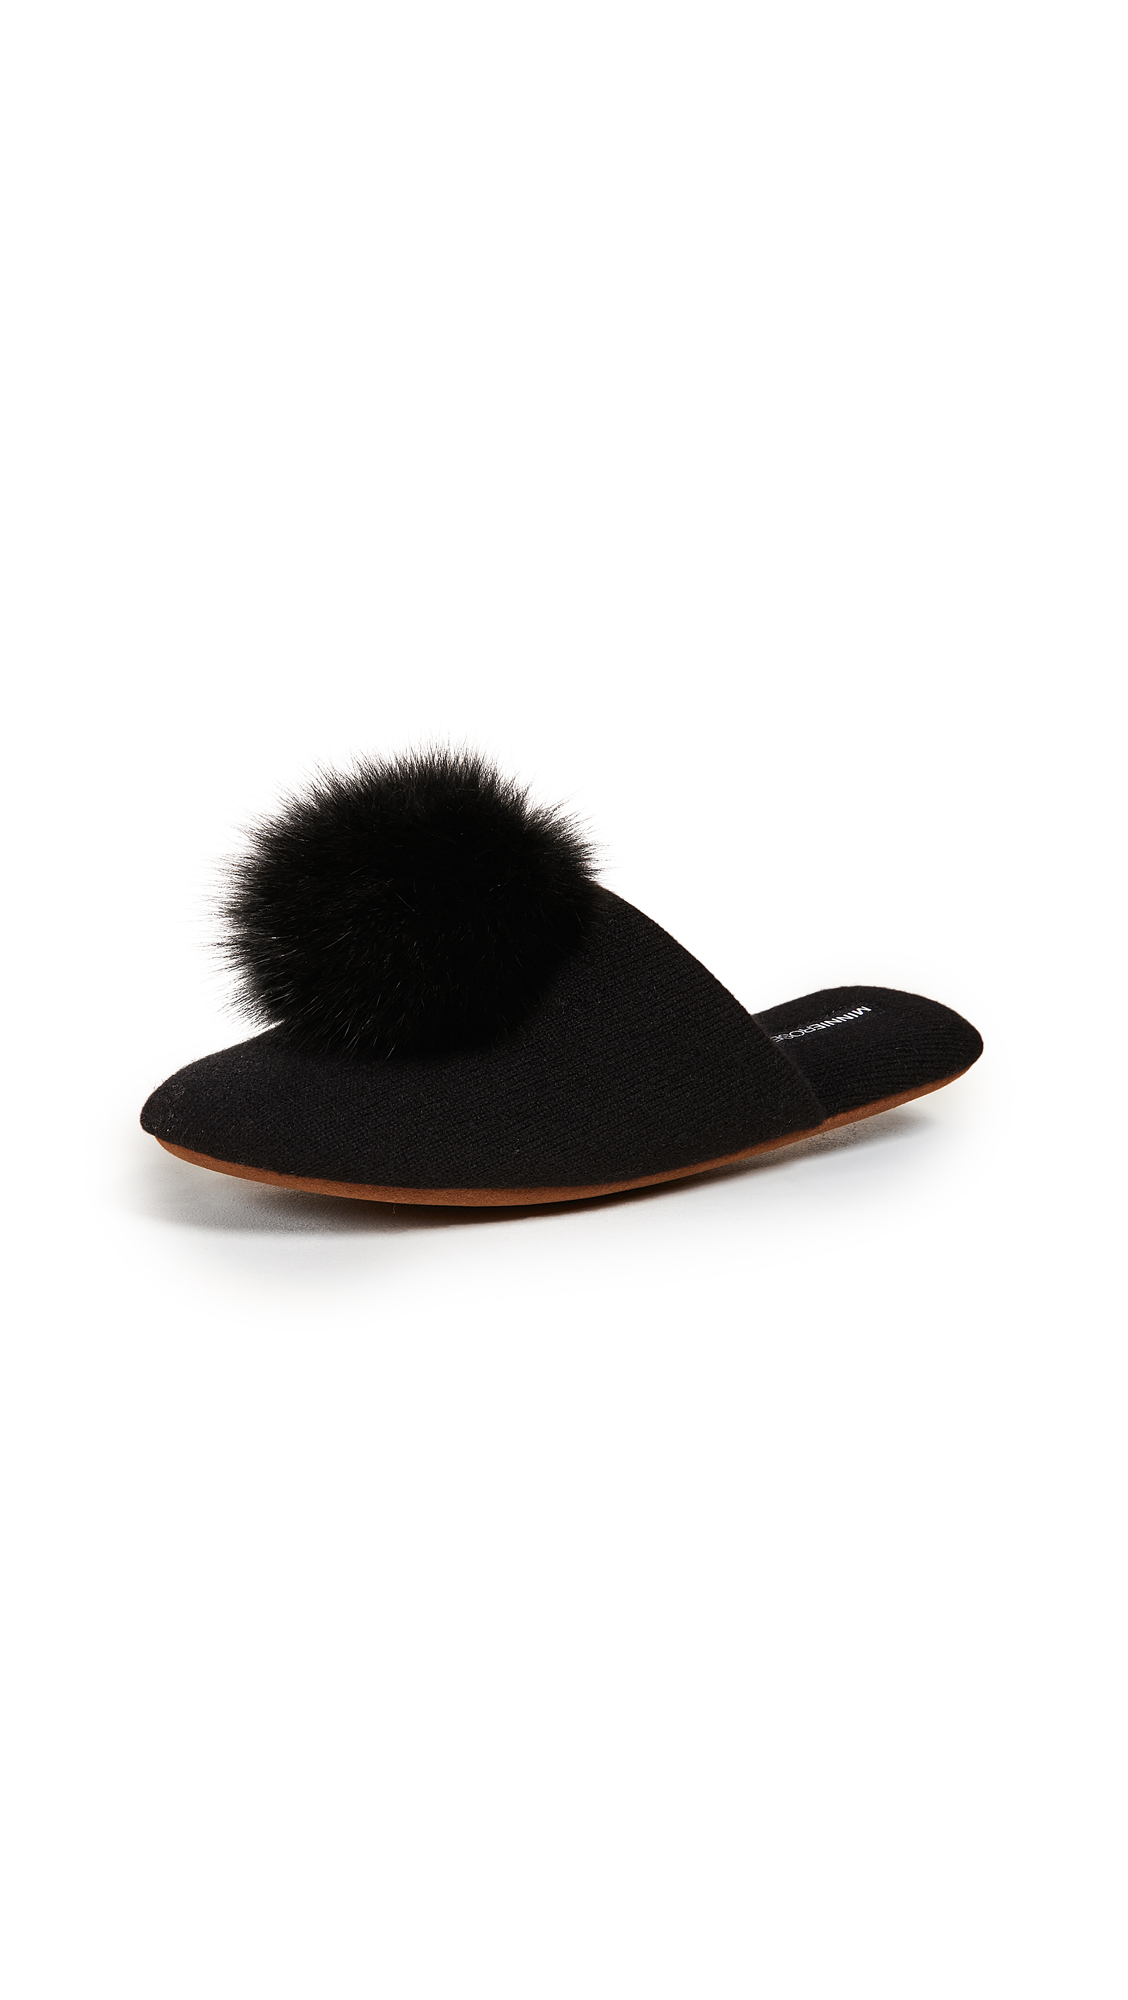 Minnie Rose Cashmere Pom Pom Slippers - Black